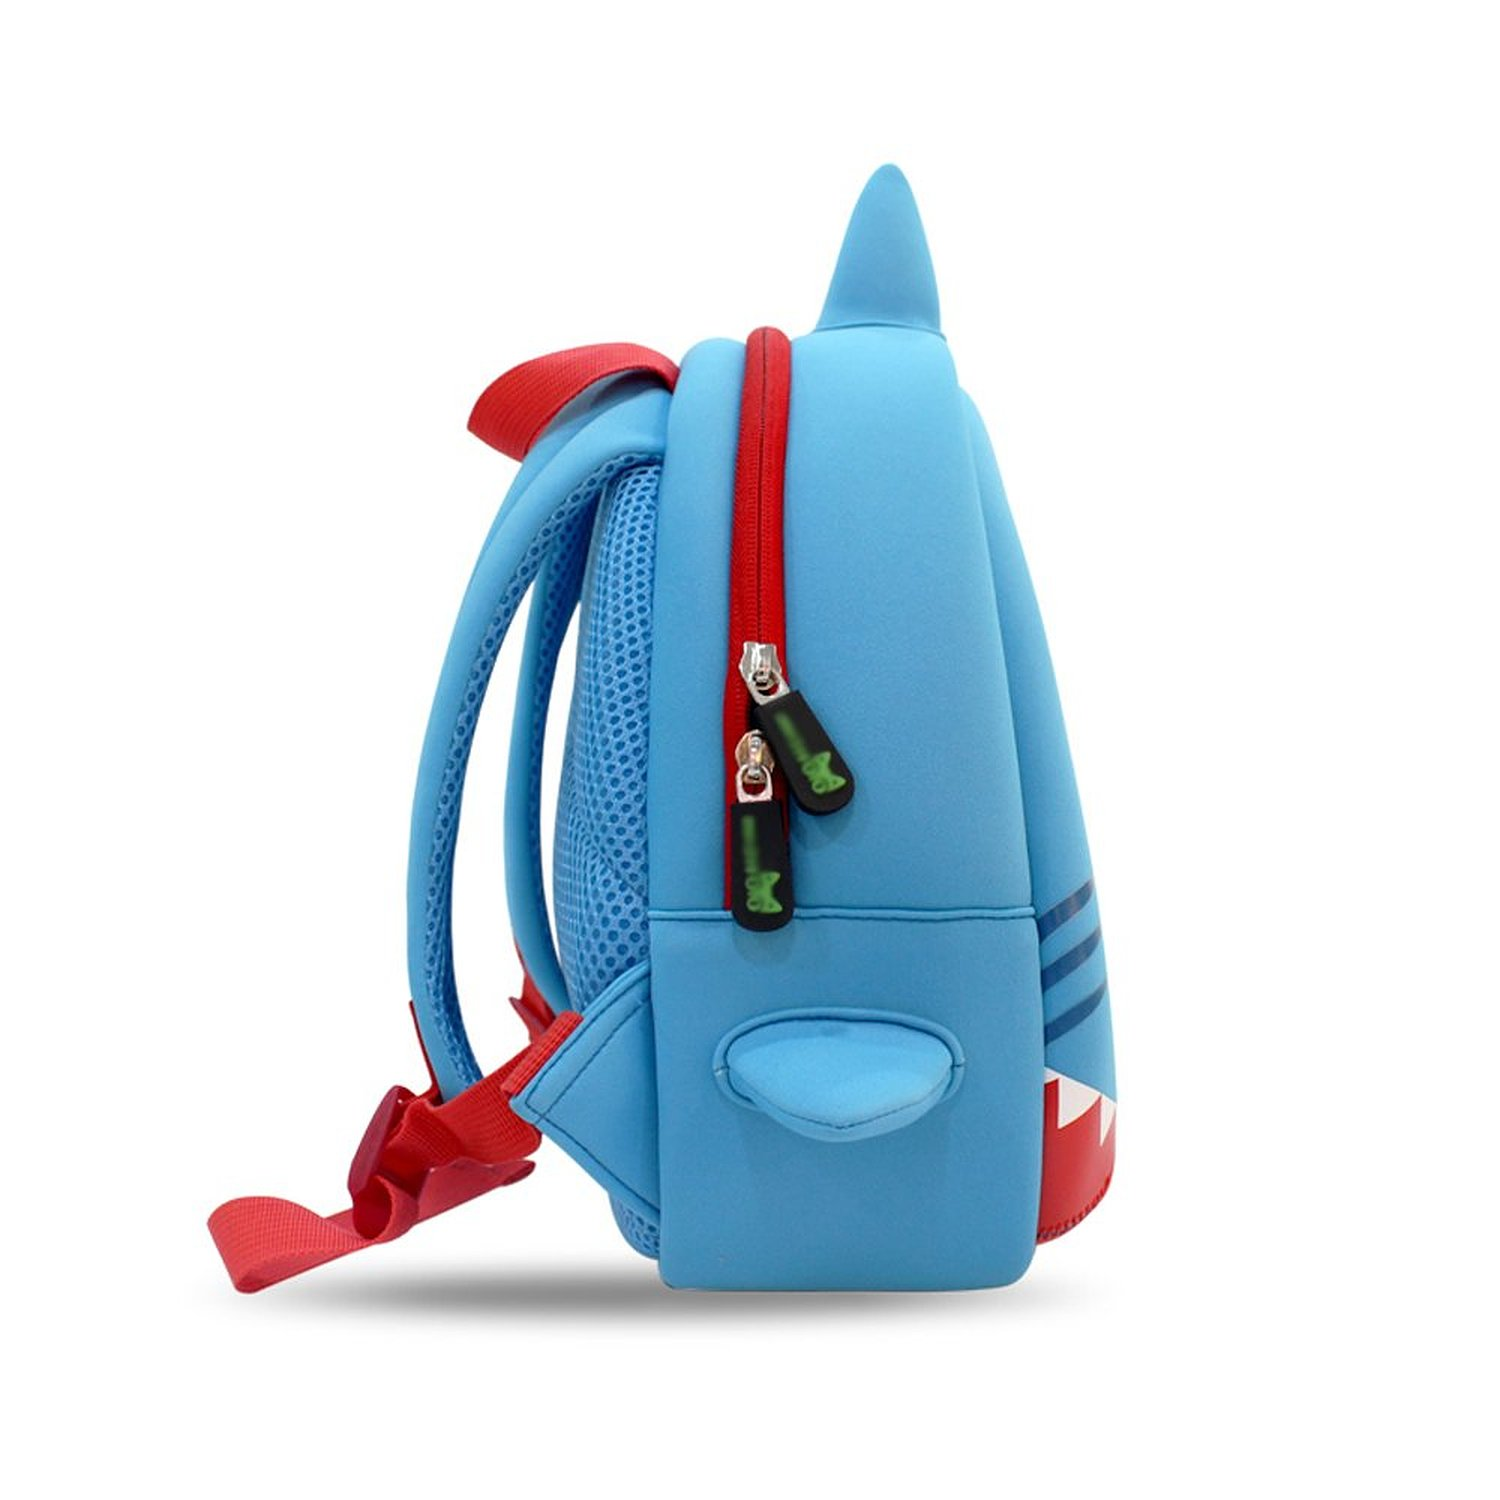 Cute Kids Backpacks GktBvczB